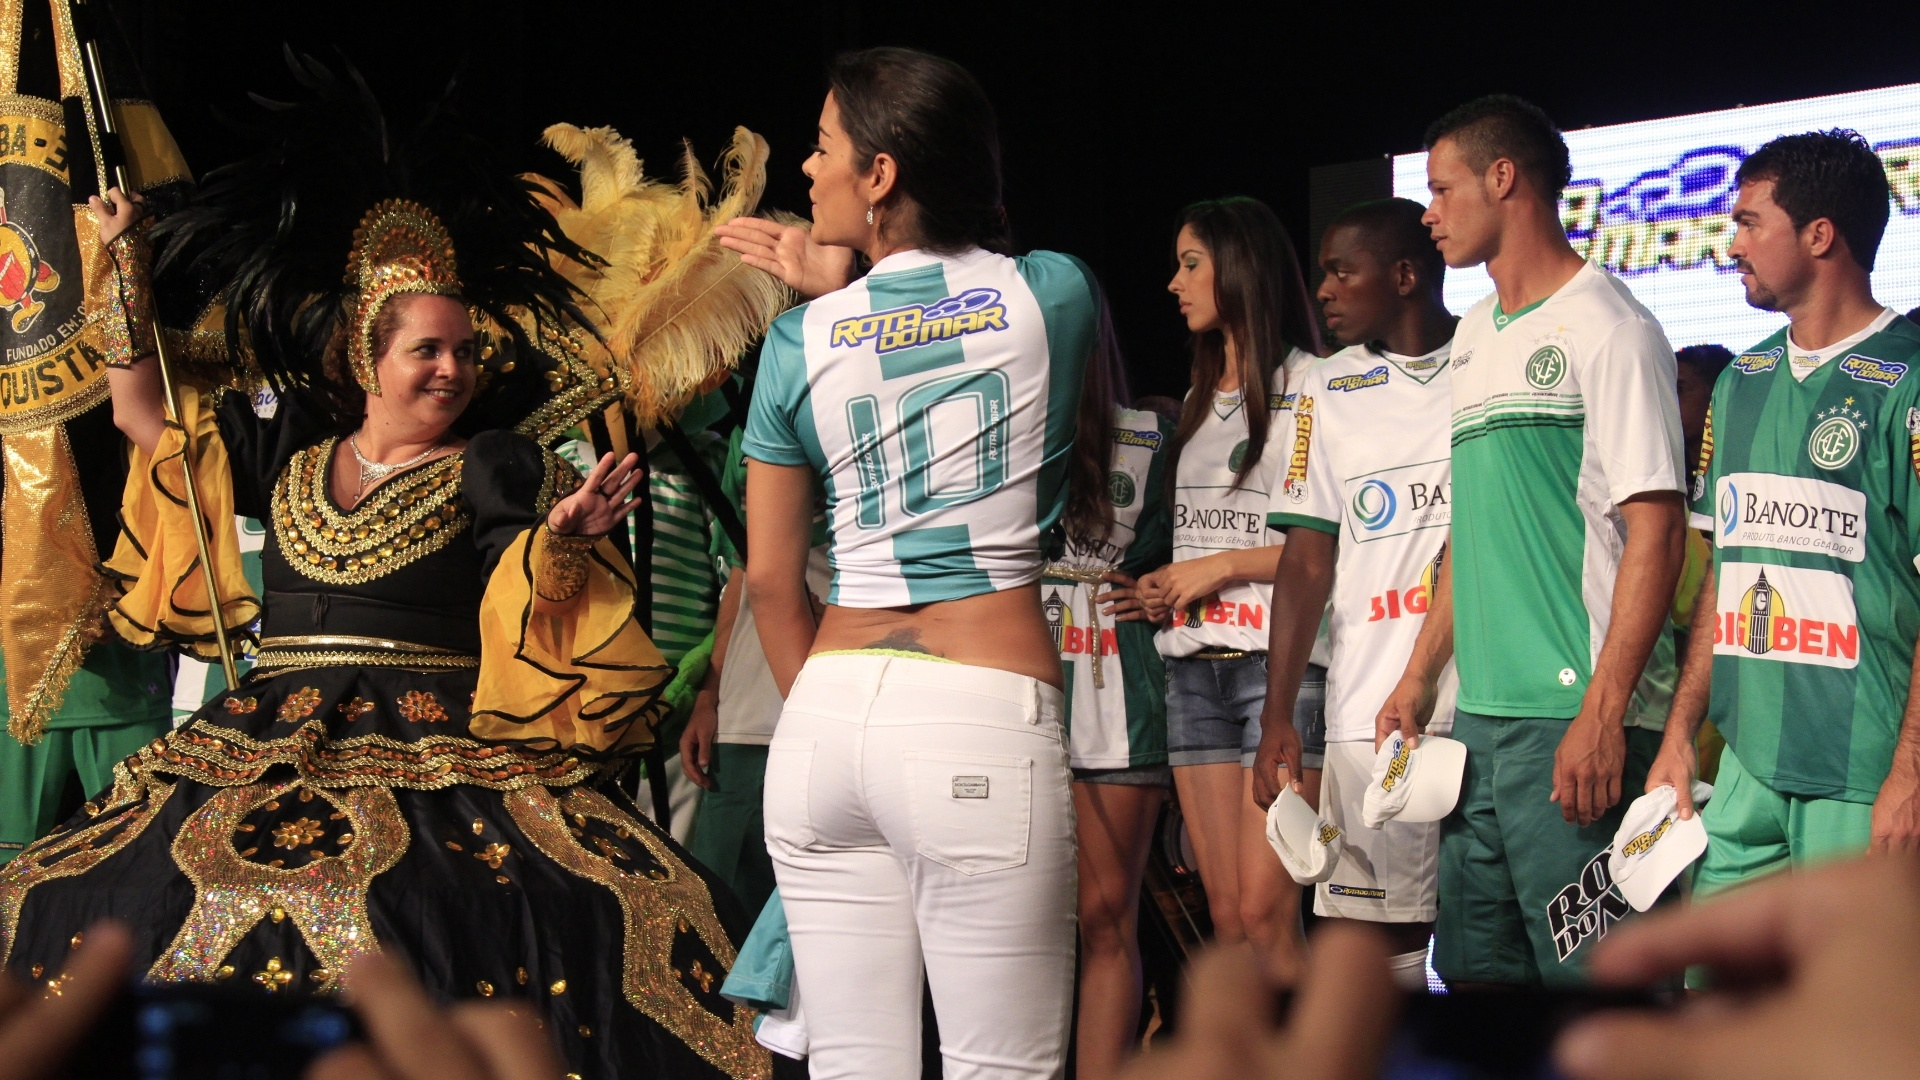 Larissa Riquelme manda beijinhos na apresentao do uniforme do Amrica-PE (12/01/2012)